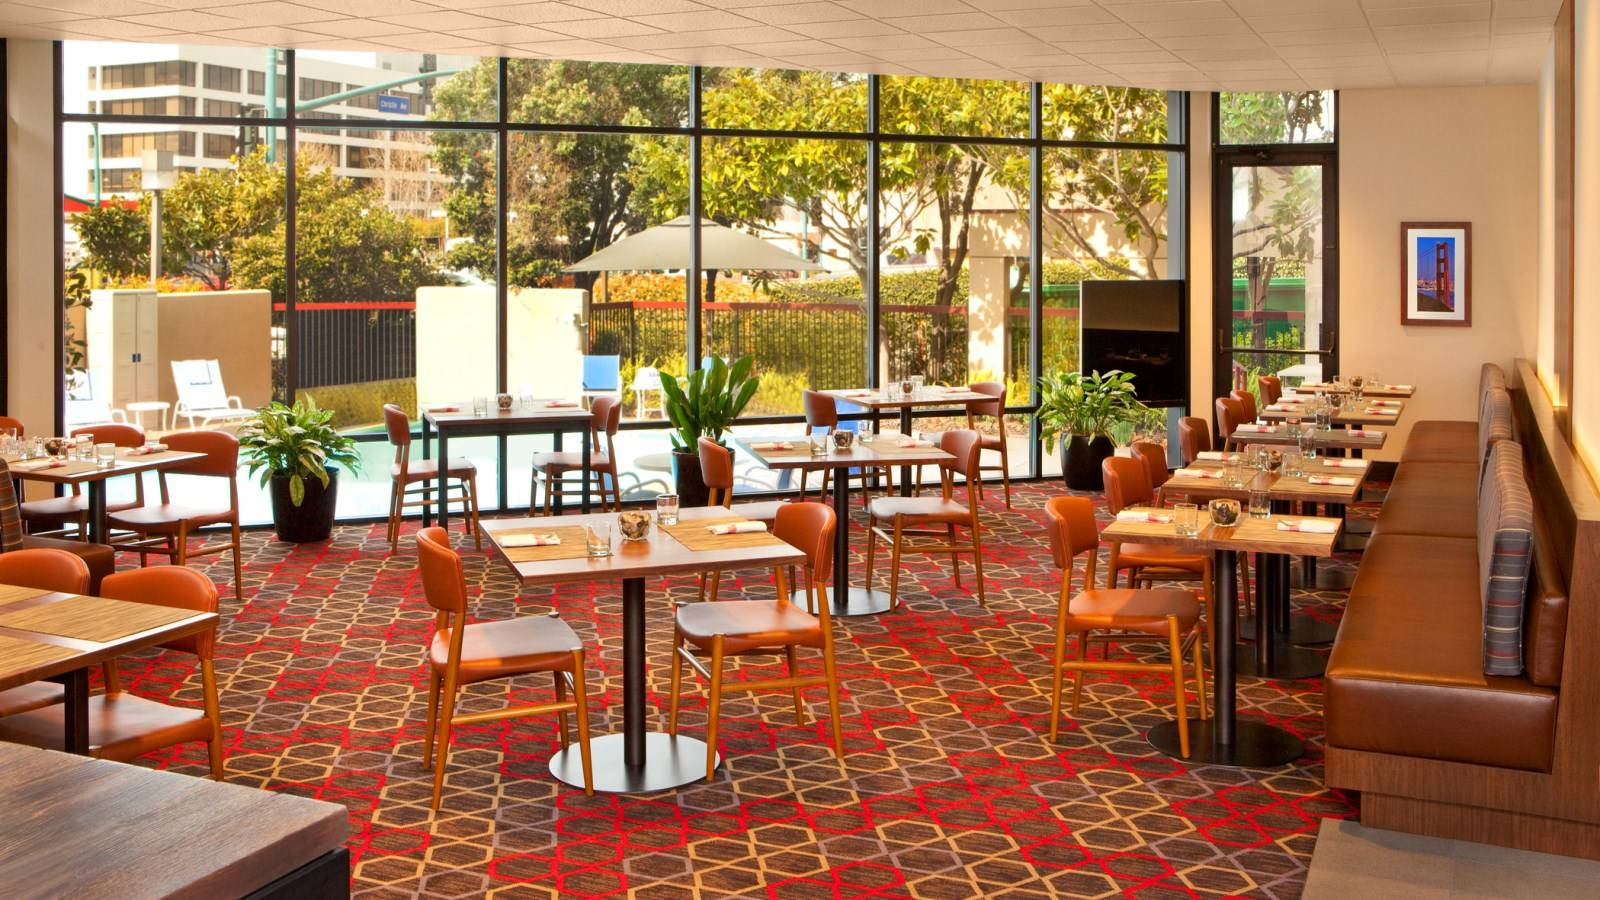 Located Right In The Lobby Of Hotel Café Four Is A Convenient Bay Area Restaurant Option For Casual Dining Experience During Your Stay At Points